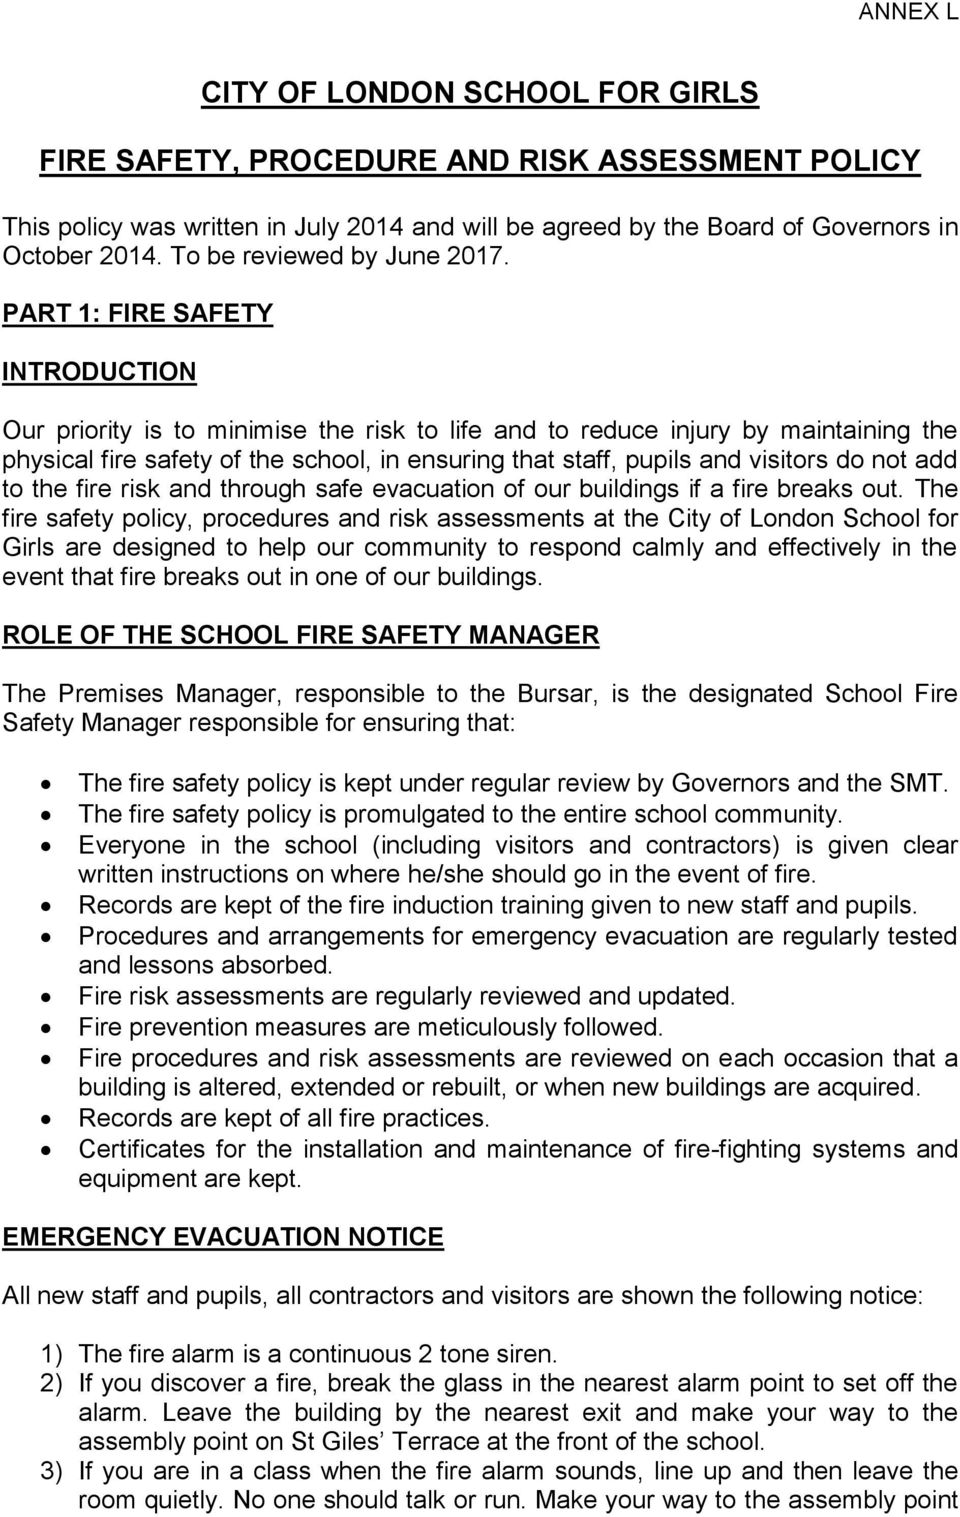 PART 1: FIRE SAFETY INTRODUCTION Our priority is to minimise the risk to life and to reduce injury by maintaining the physical fire safety of the school, in ensuring that staff, pupils and visitors